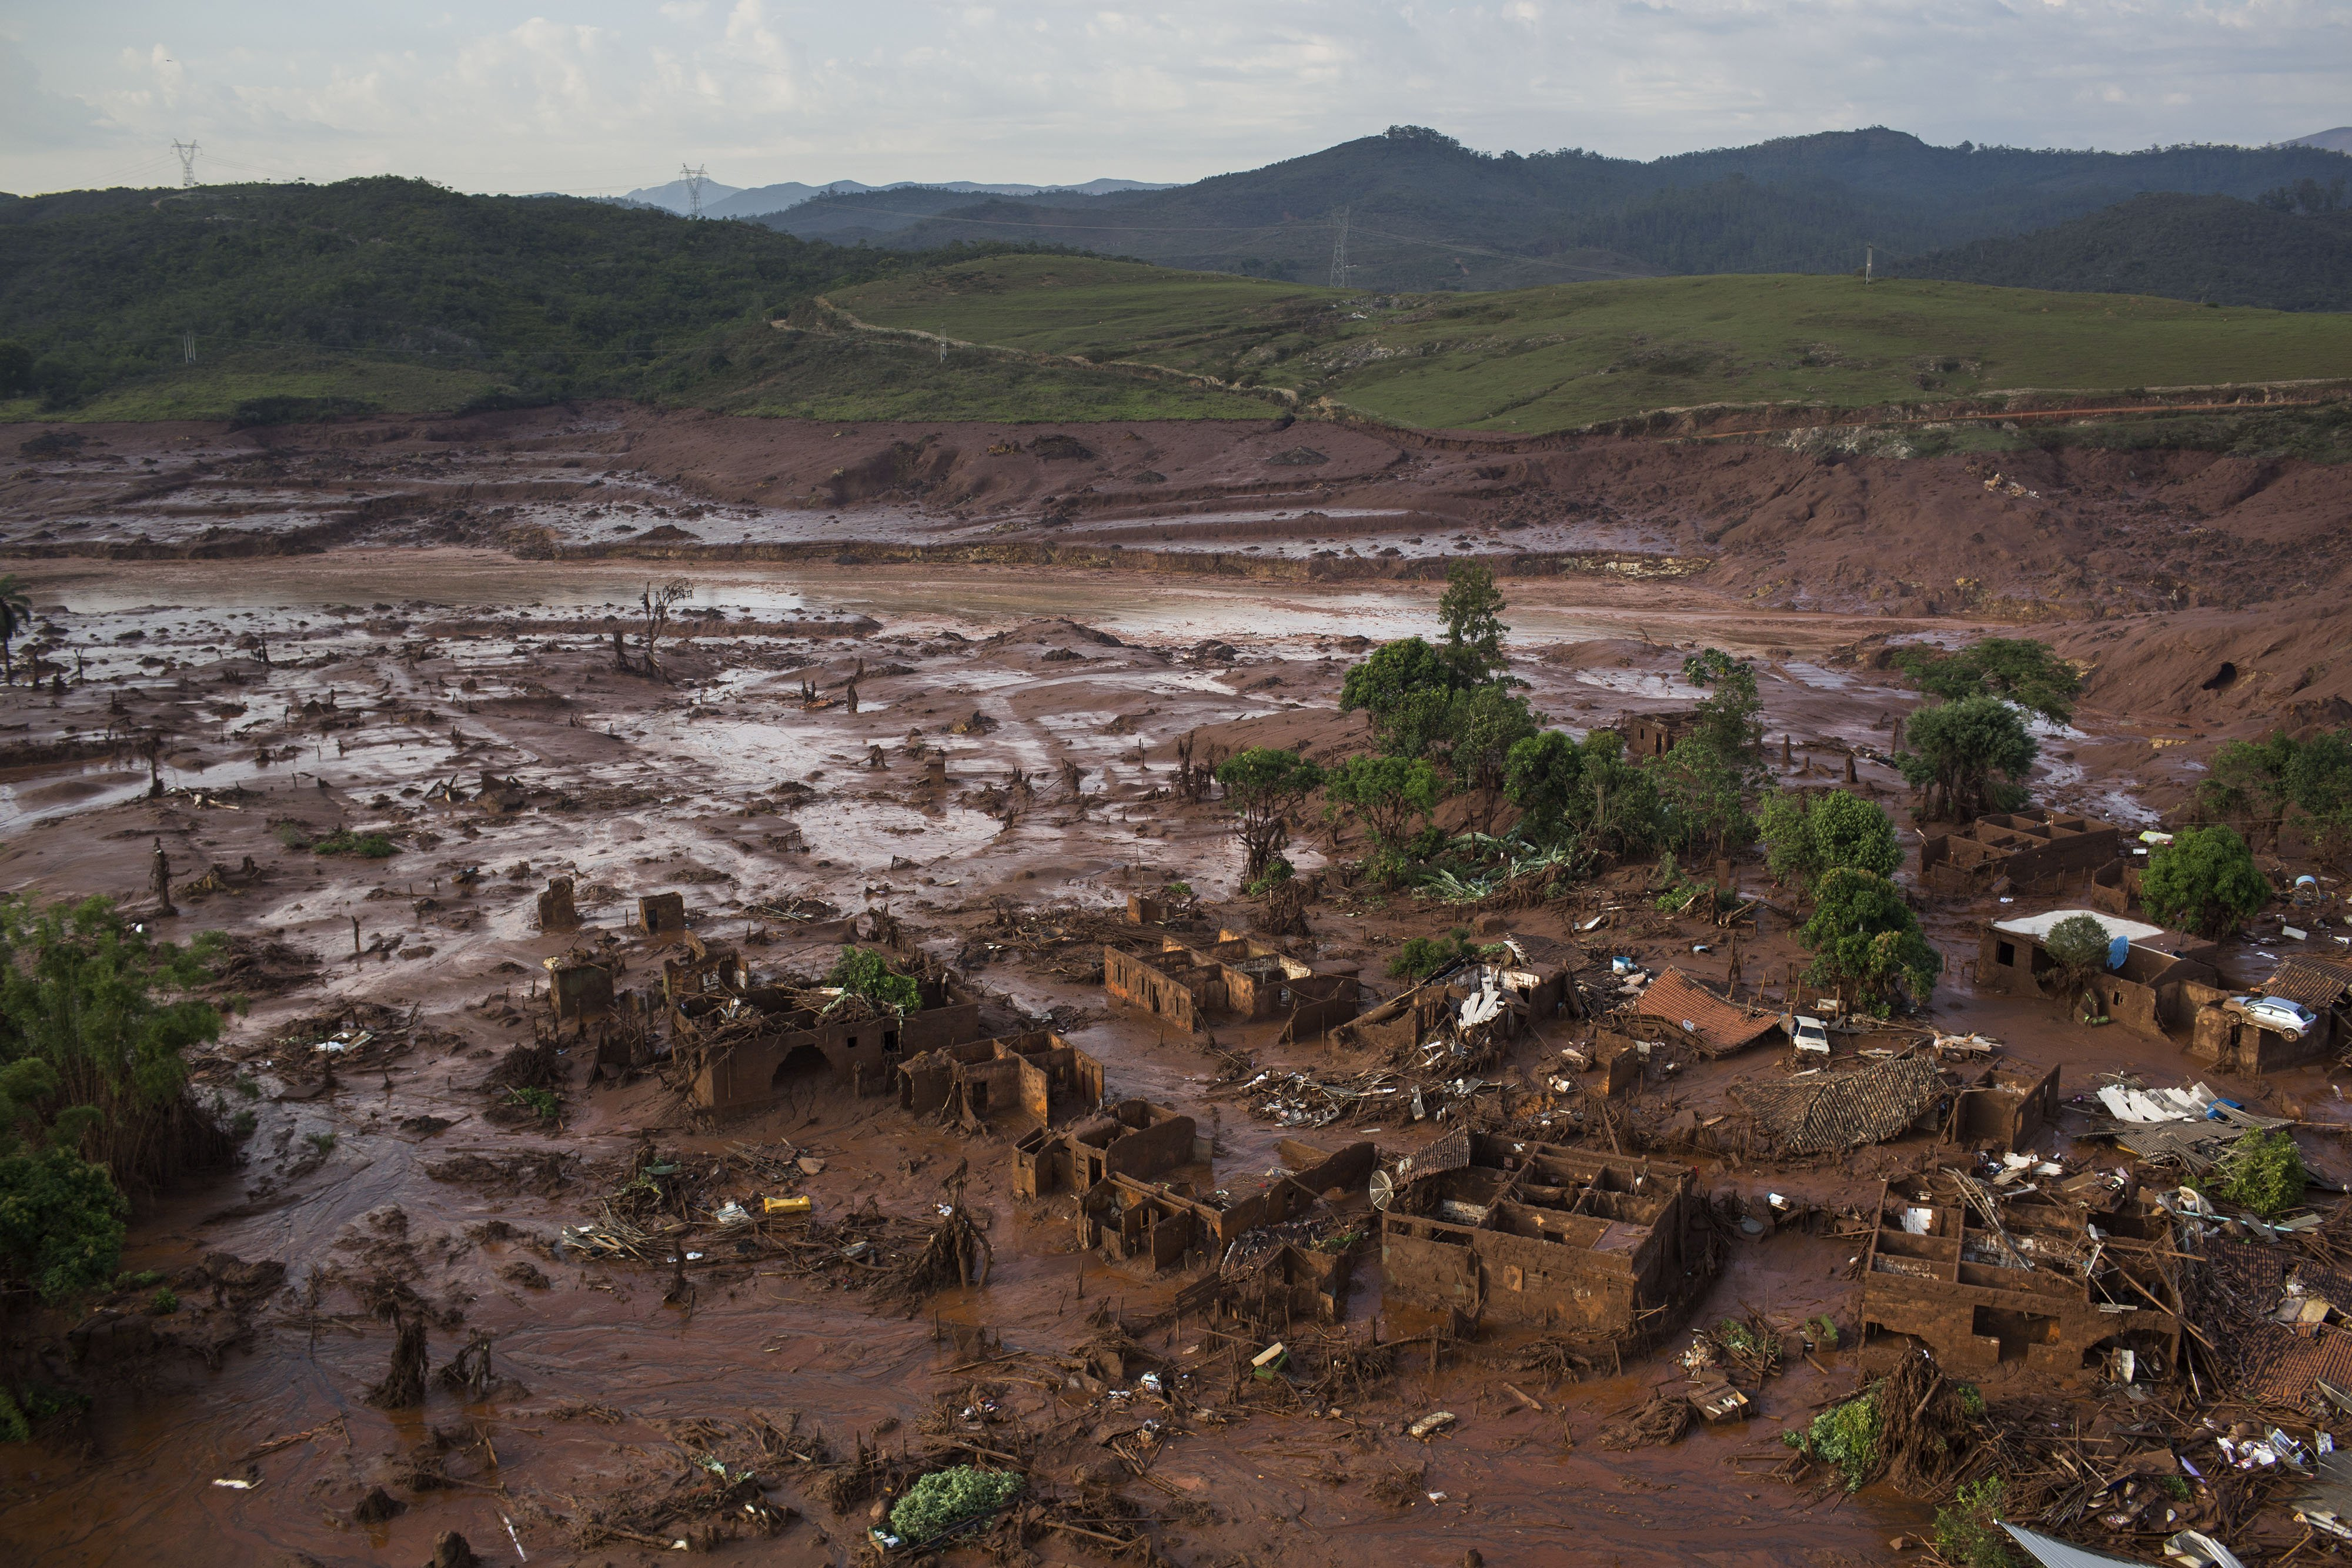 Aerial view of the debris after a dam burst at the small town of Bento Rodrigues in Minas Gerais state, Brazil, on Nov. 6, 2015.